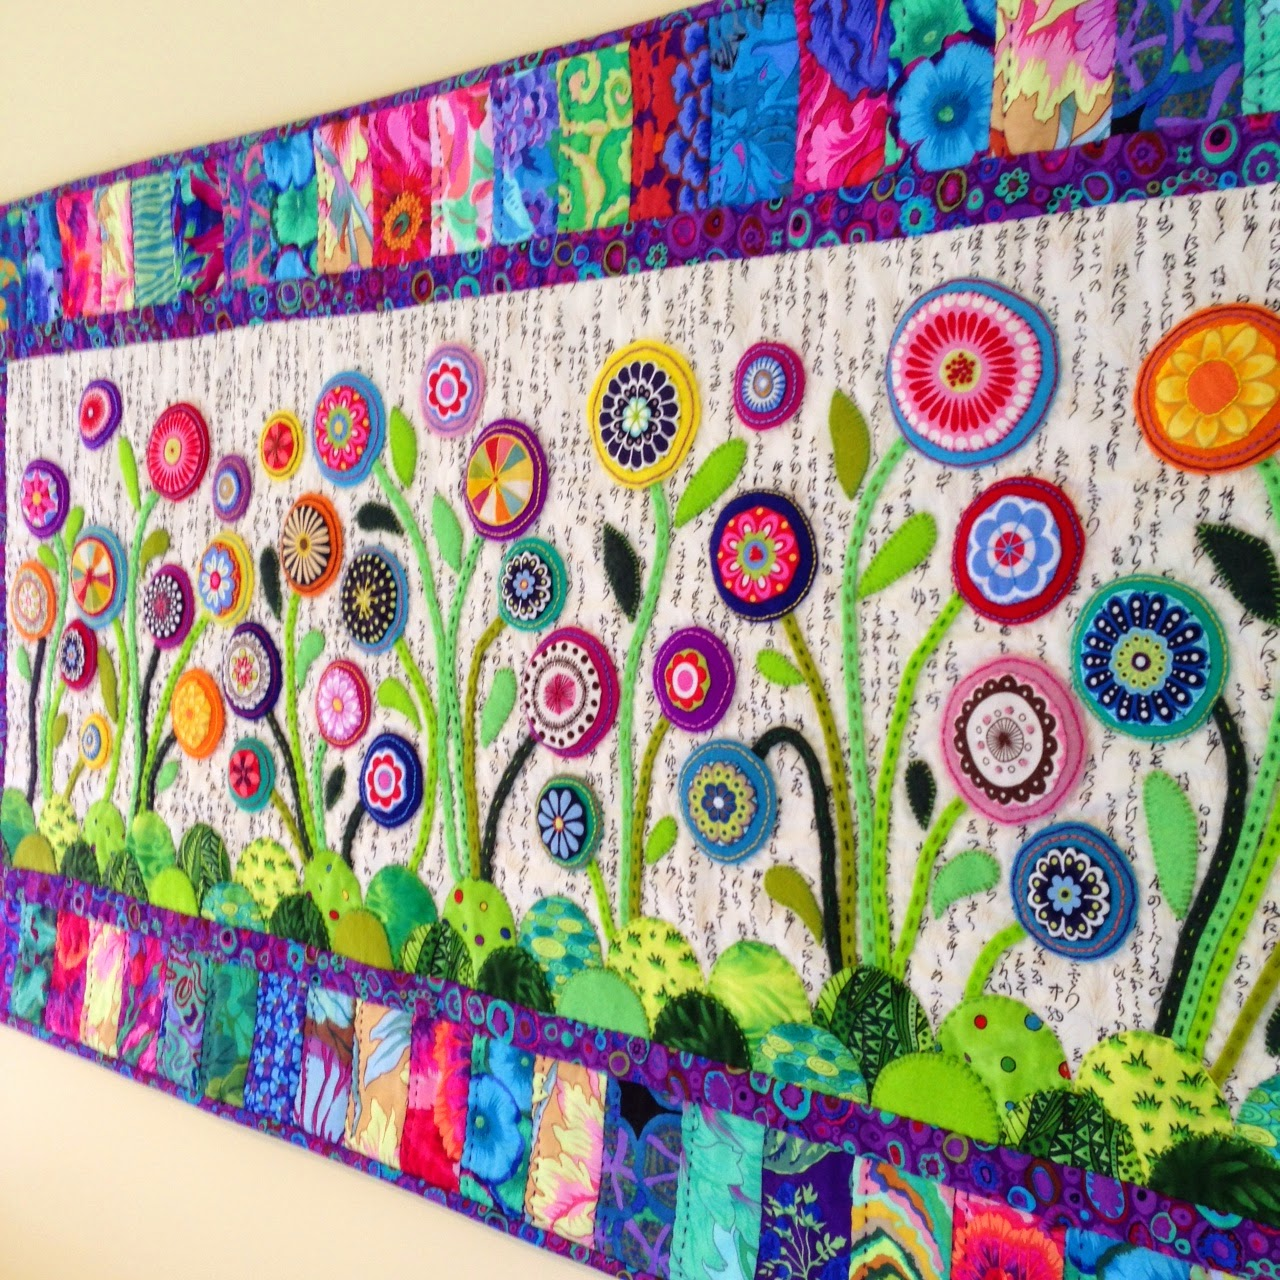 Wendy S Quilts And More Bloggers Quilt Festival Flower